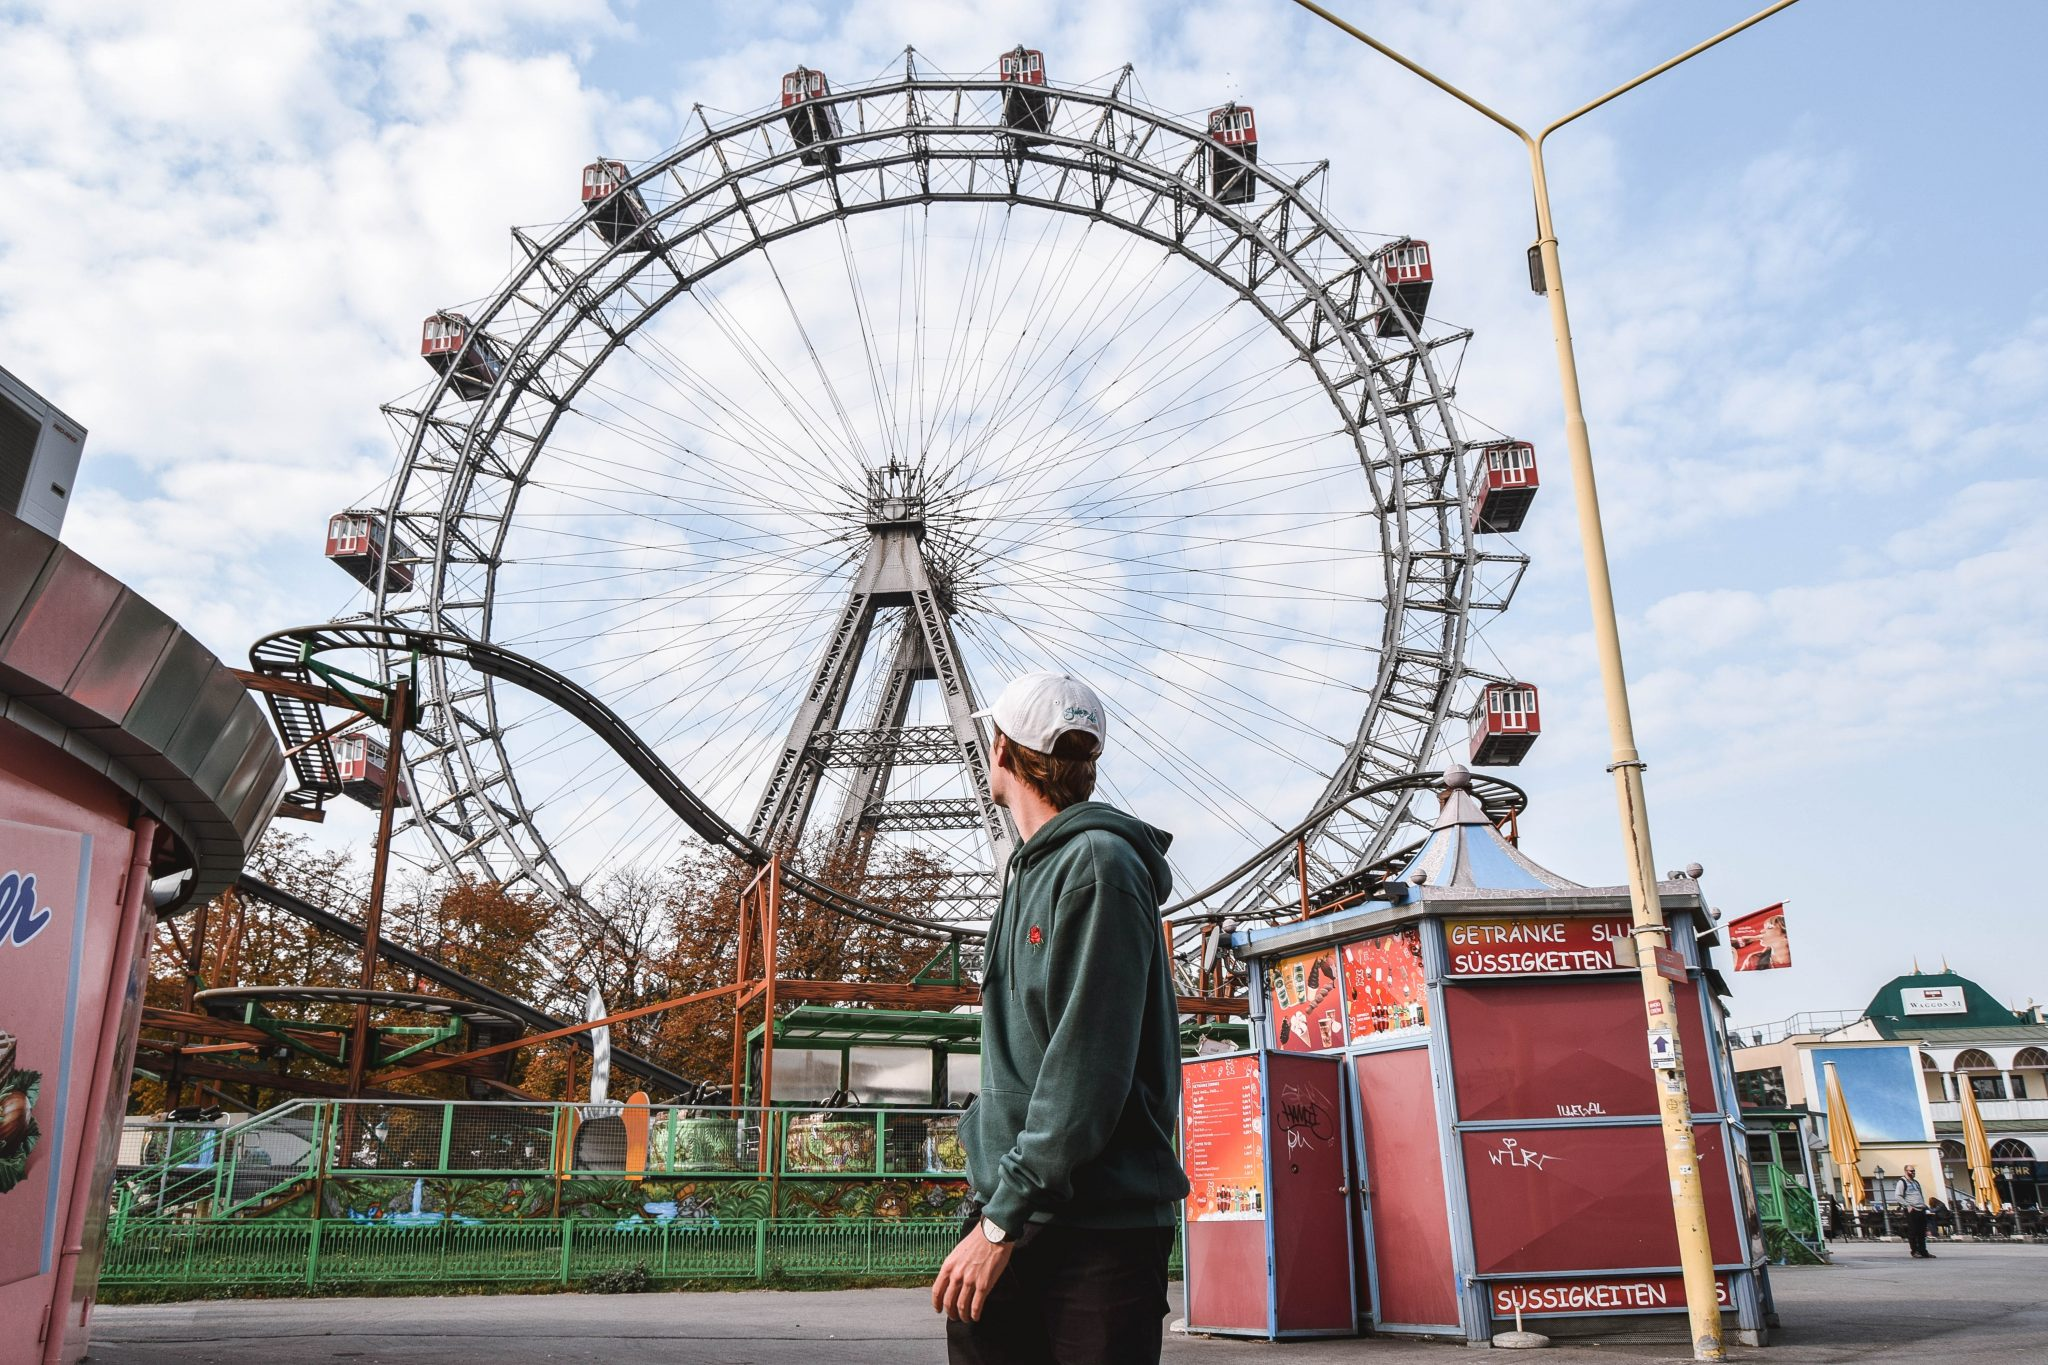 Wanderers & Warriors - Charlie & Lauren UK Travel Couple - Prater Amusement Park Vienna Prater Vienna In A Day - Things To Do In Vienna Itinerary 3 Days In Vienna 3 Day Itinerary Vienna 2 Day Itinerary